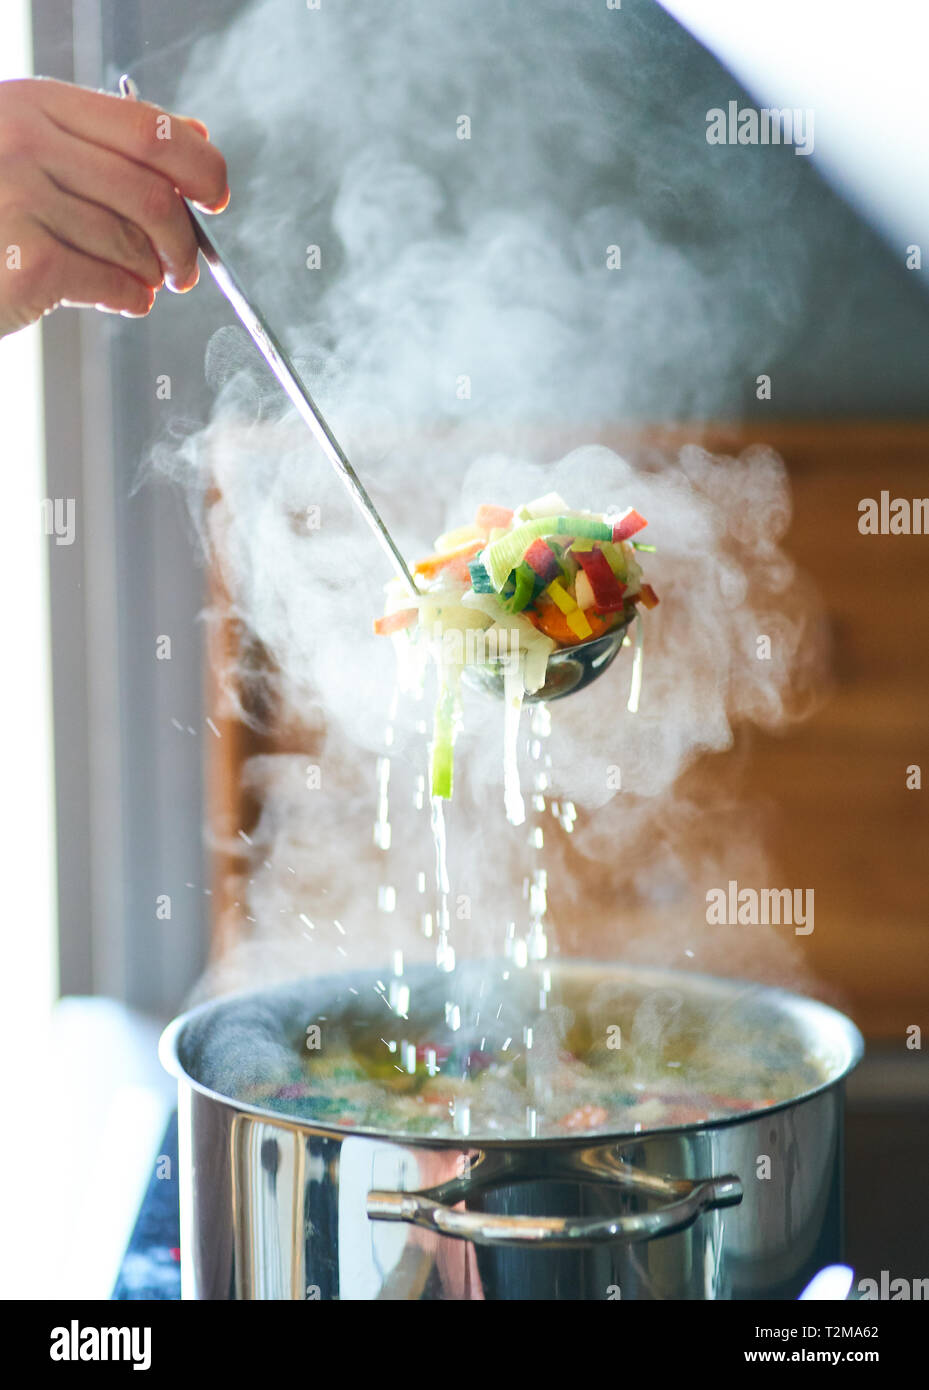 A hot vegetable soup is cooked and stirred in  Pfaffenhofen, April 28, 2019.  © Peter Schatz / Alamy Stock Photos - Stock Image